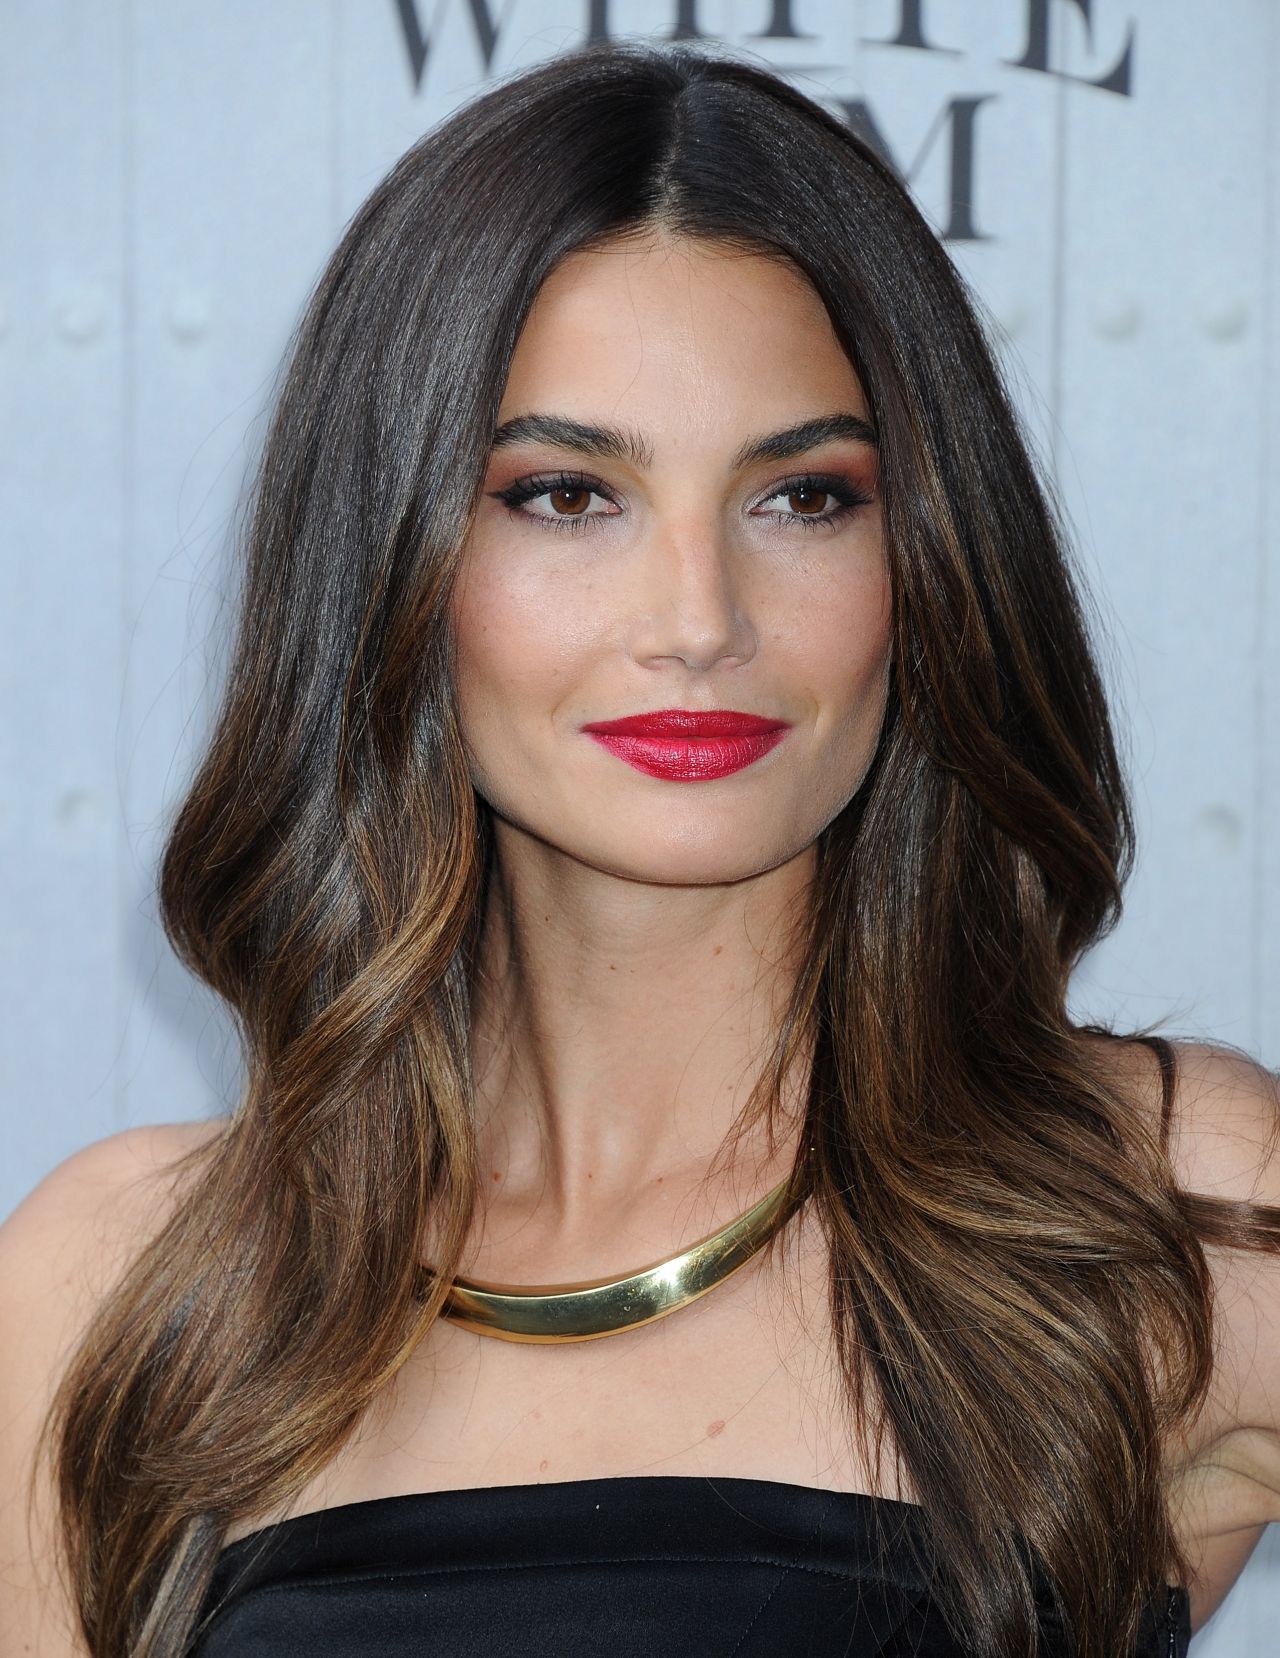 http://celebmafia.com/wp-content/uploads/2014/06/lily-aldridge-2014-spike-tv-s-guys-choice-awards_7.jpg